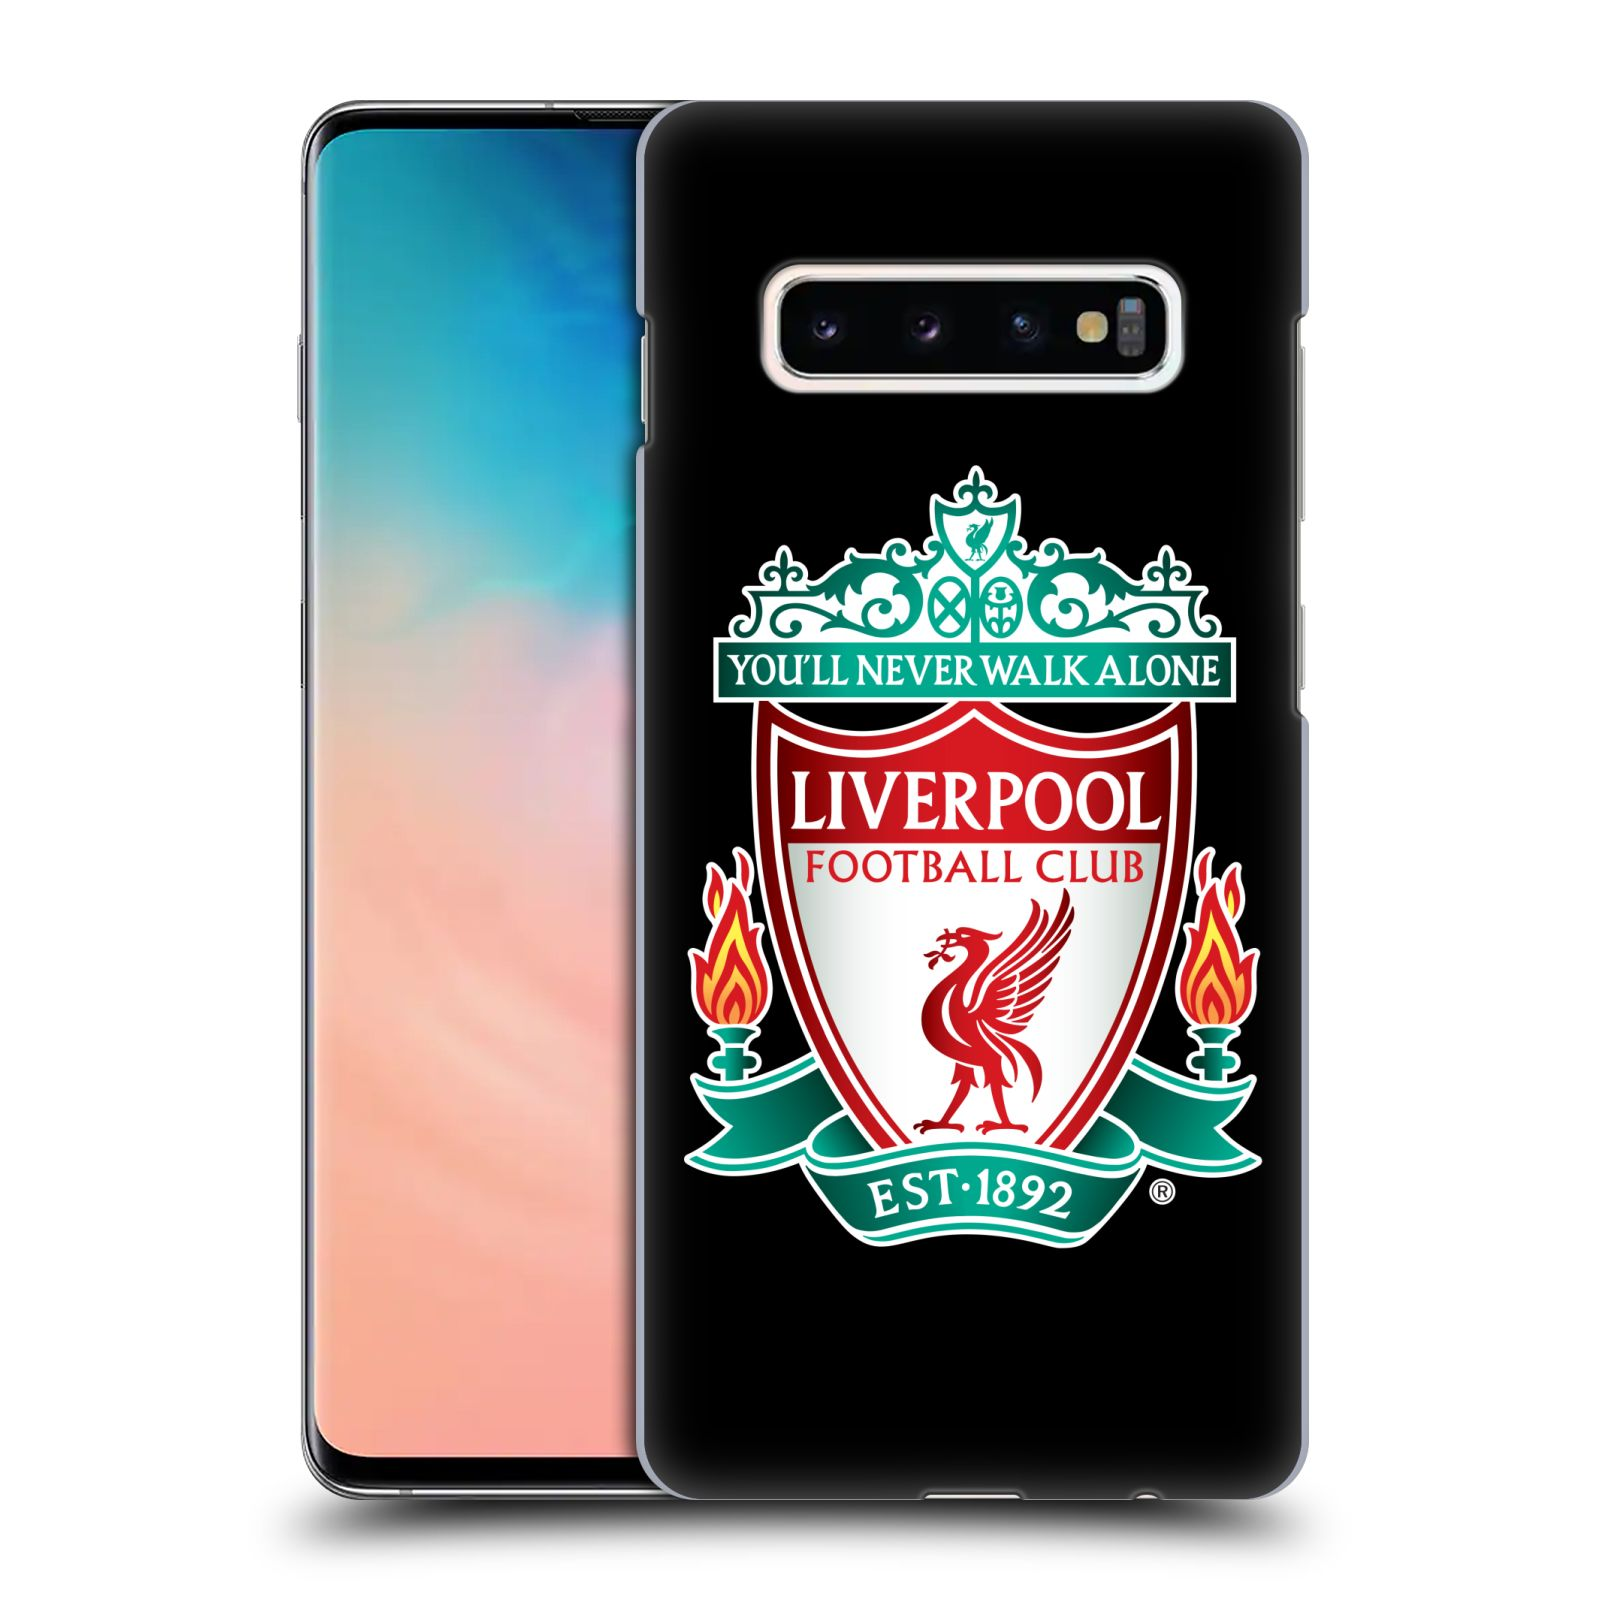 Plastové pouzdro na mobil Samsung Galaxy S10 Plus - Head Case - ZNAK LIVERPOOL FC OFFICIAL BLACK